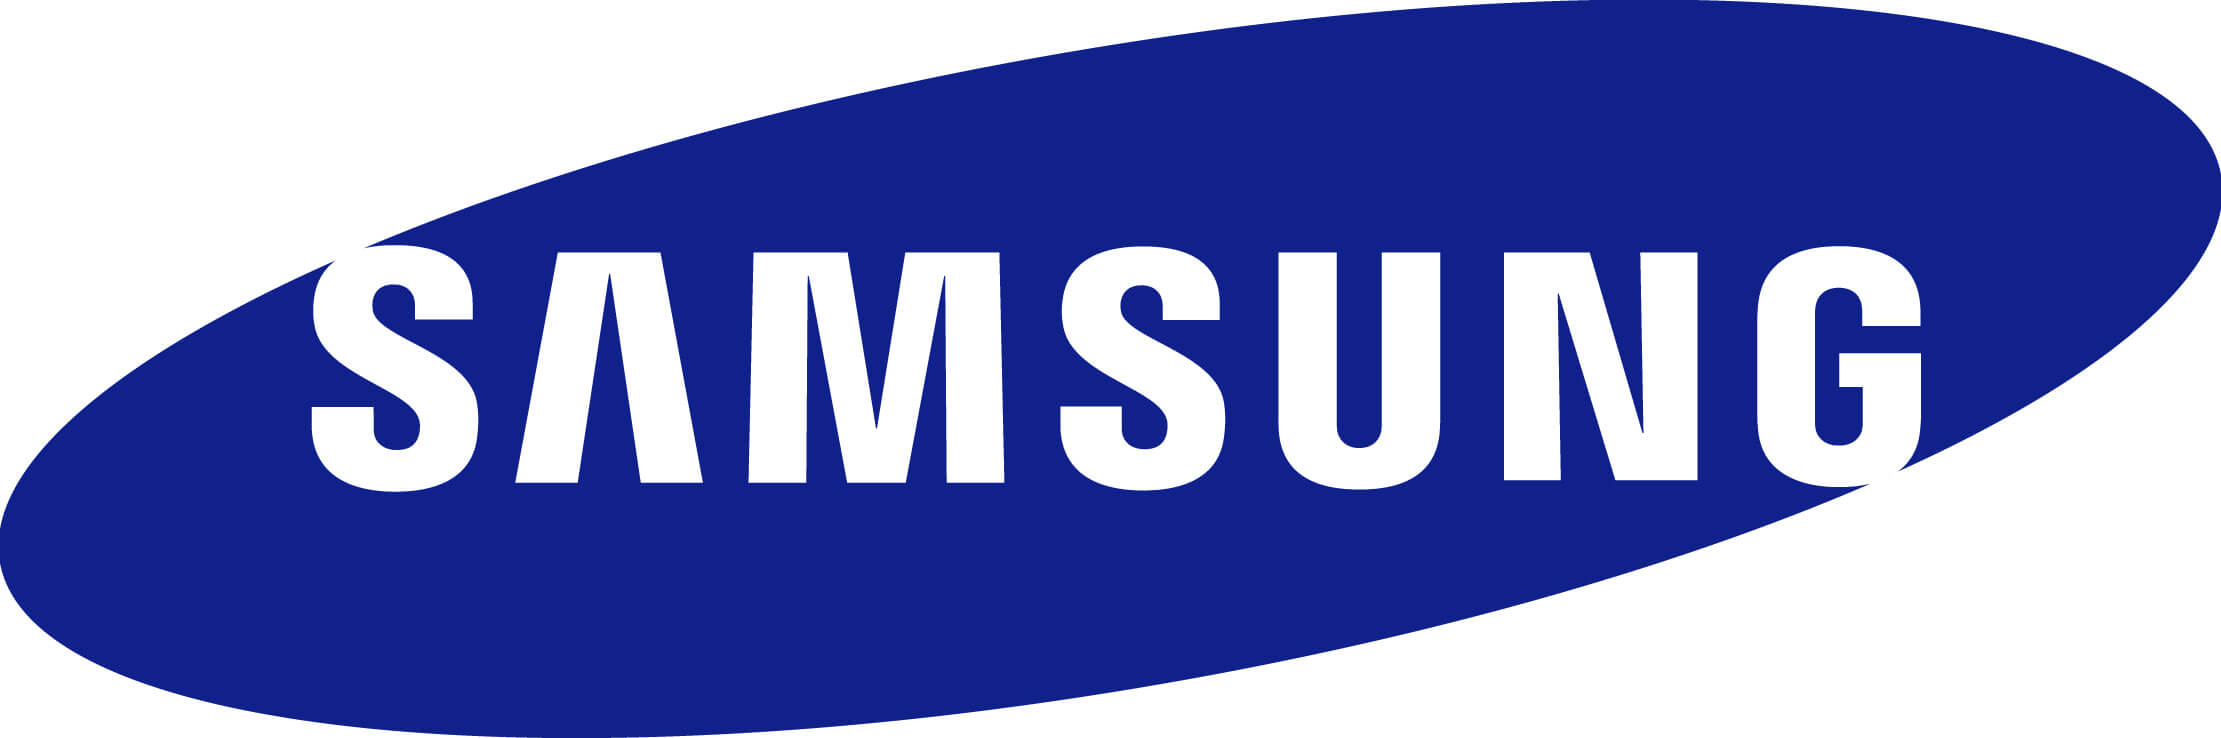 The new Samsung 2015 Product Launch.....